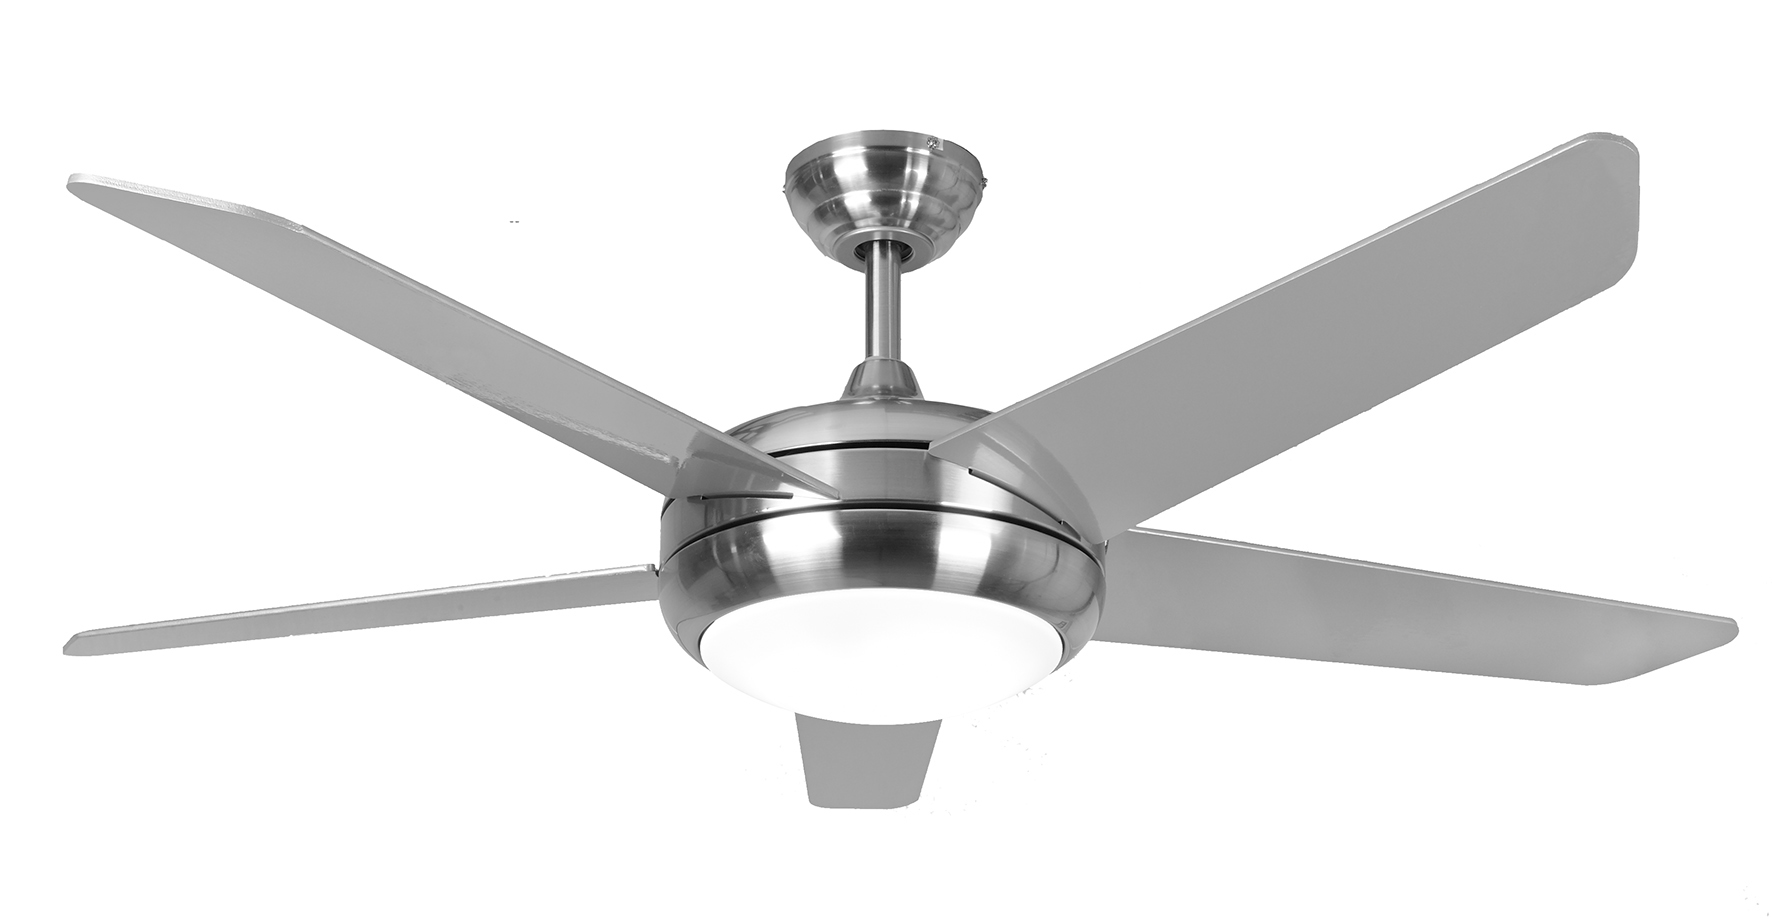 Control Ceiling Fan : Eurofans neptune brushed nickel ceiling fan remote